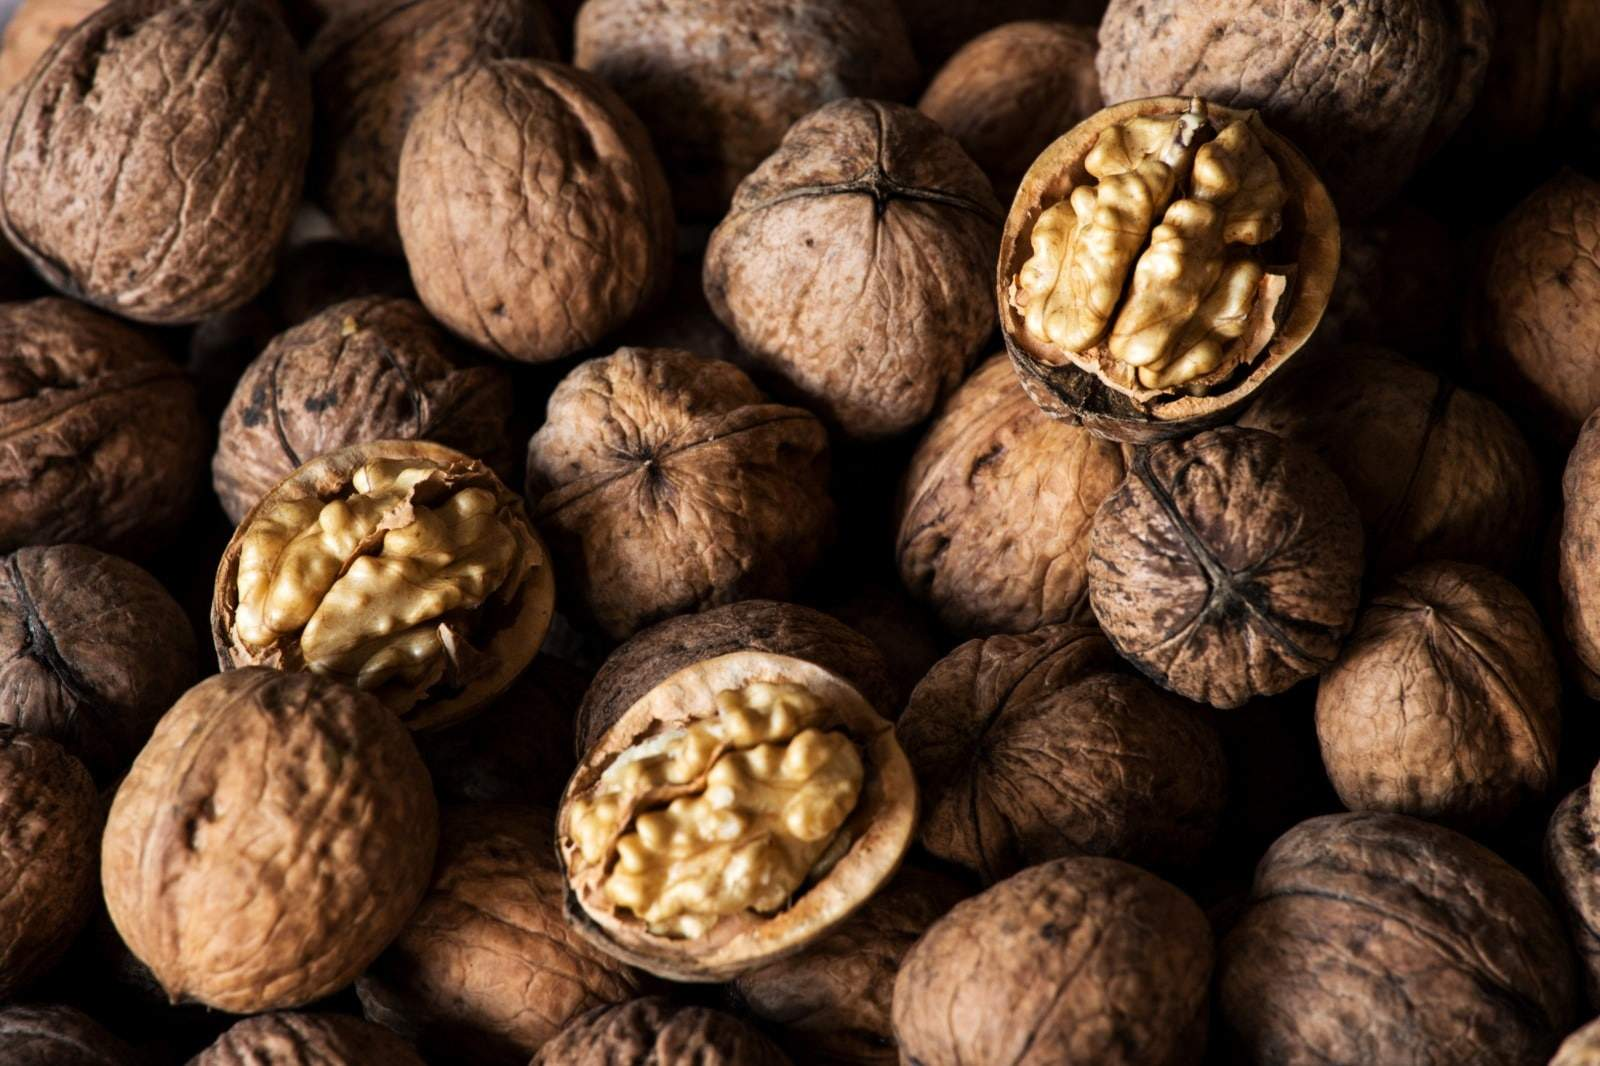 10 Reasons Why Walnuts Are A Must-Eat Superfood